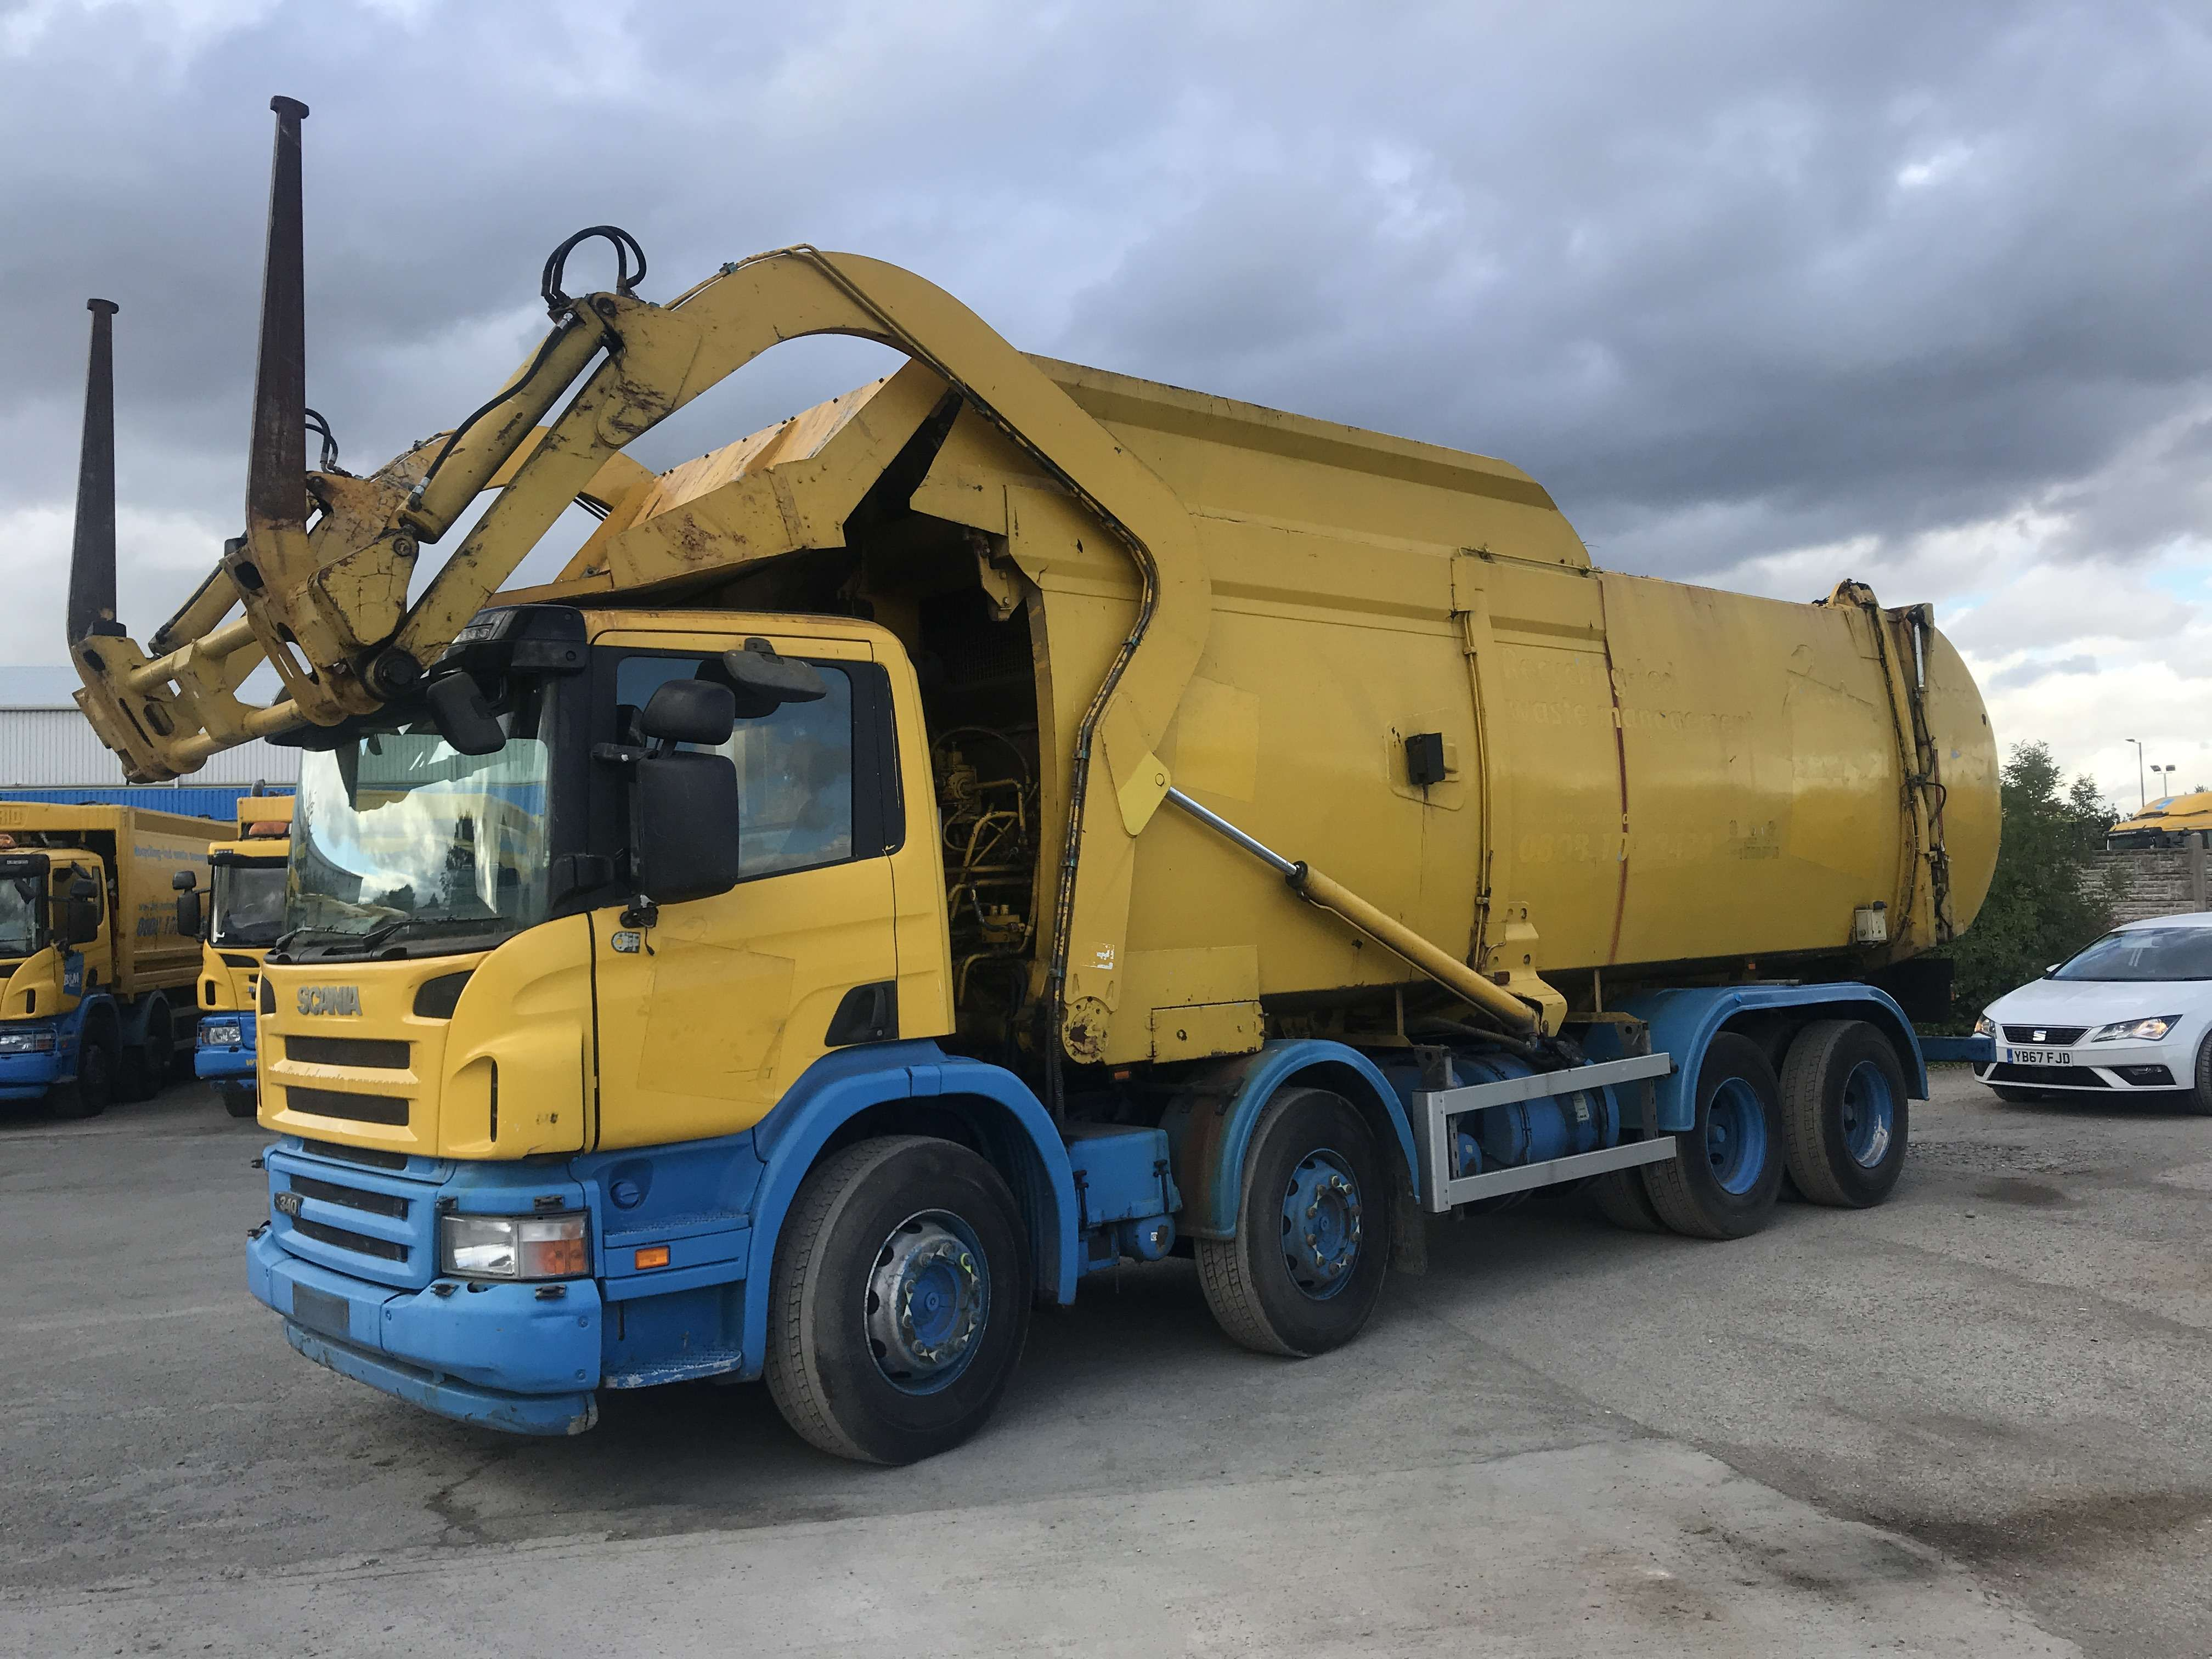 2007 Scania P340 8x4 front end loader for sale